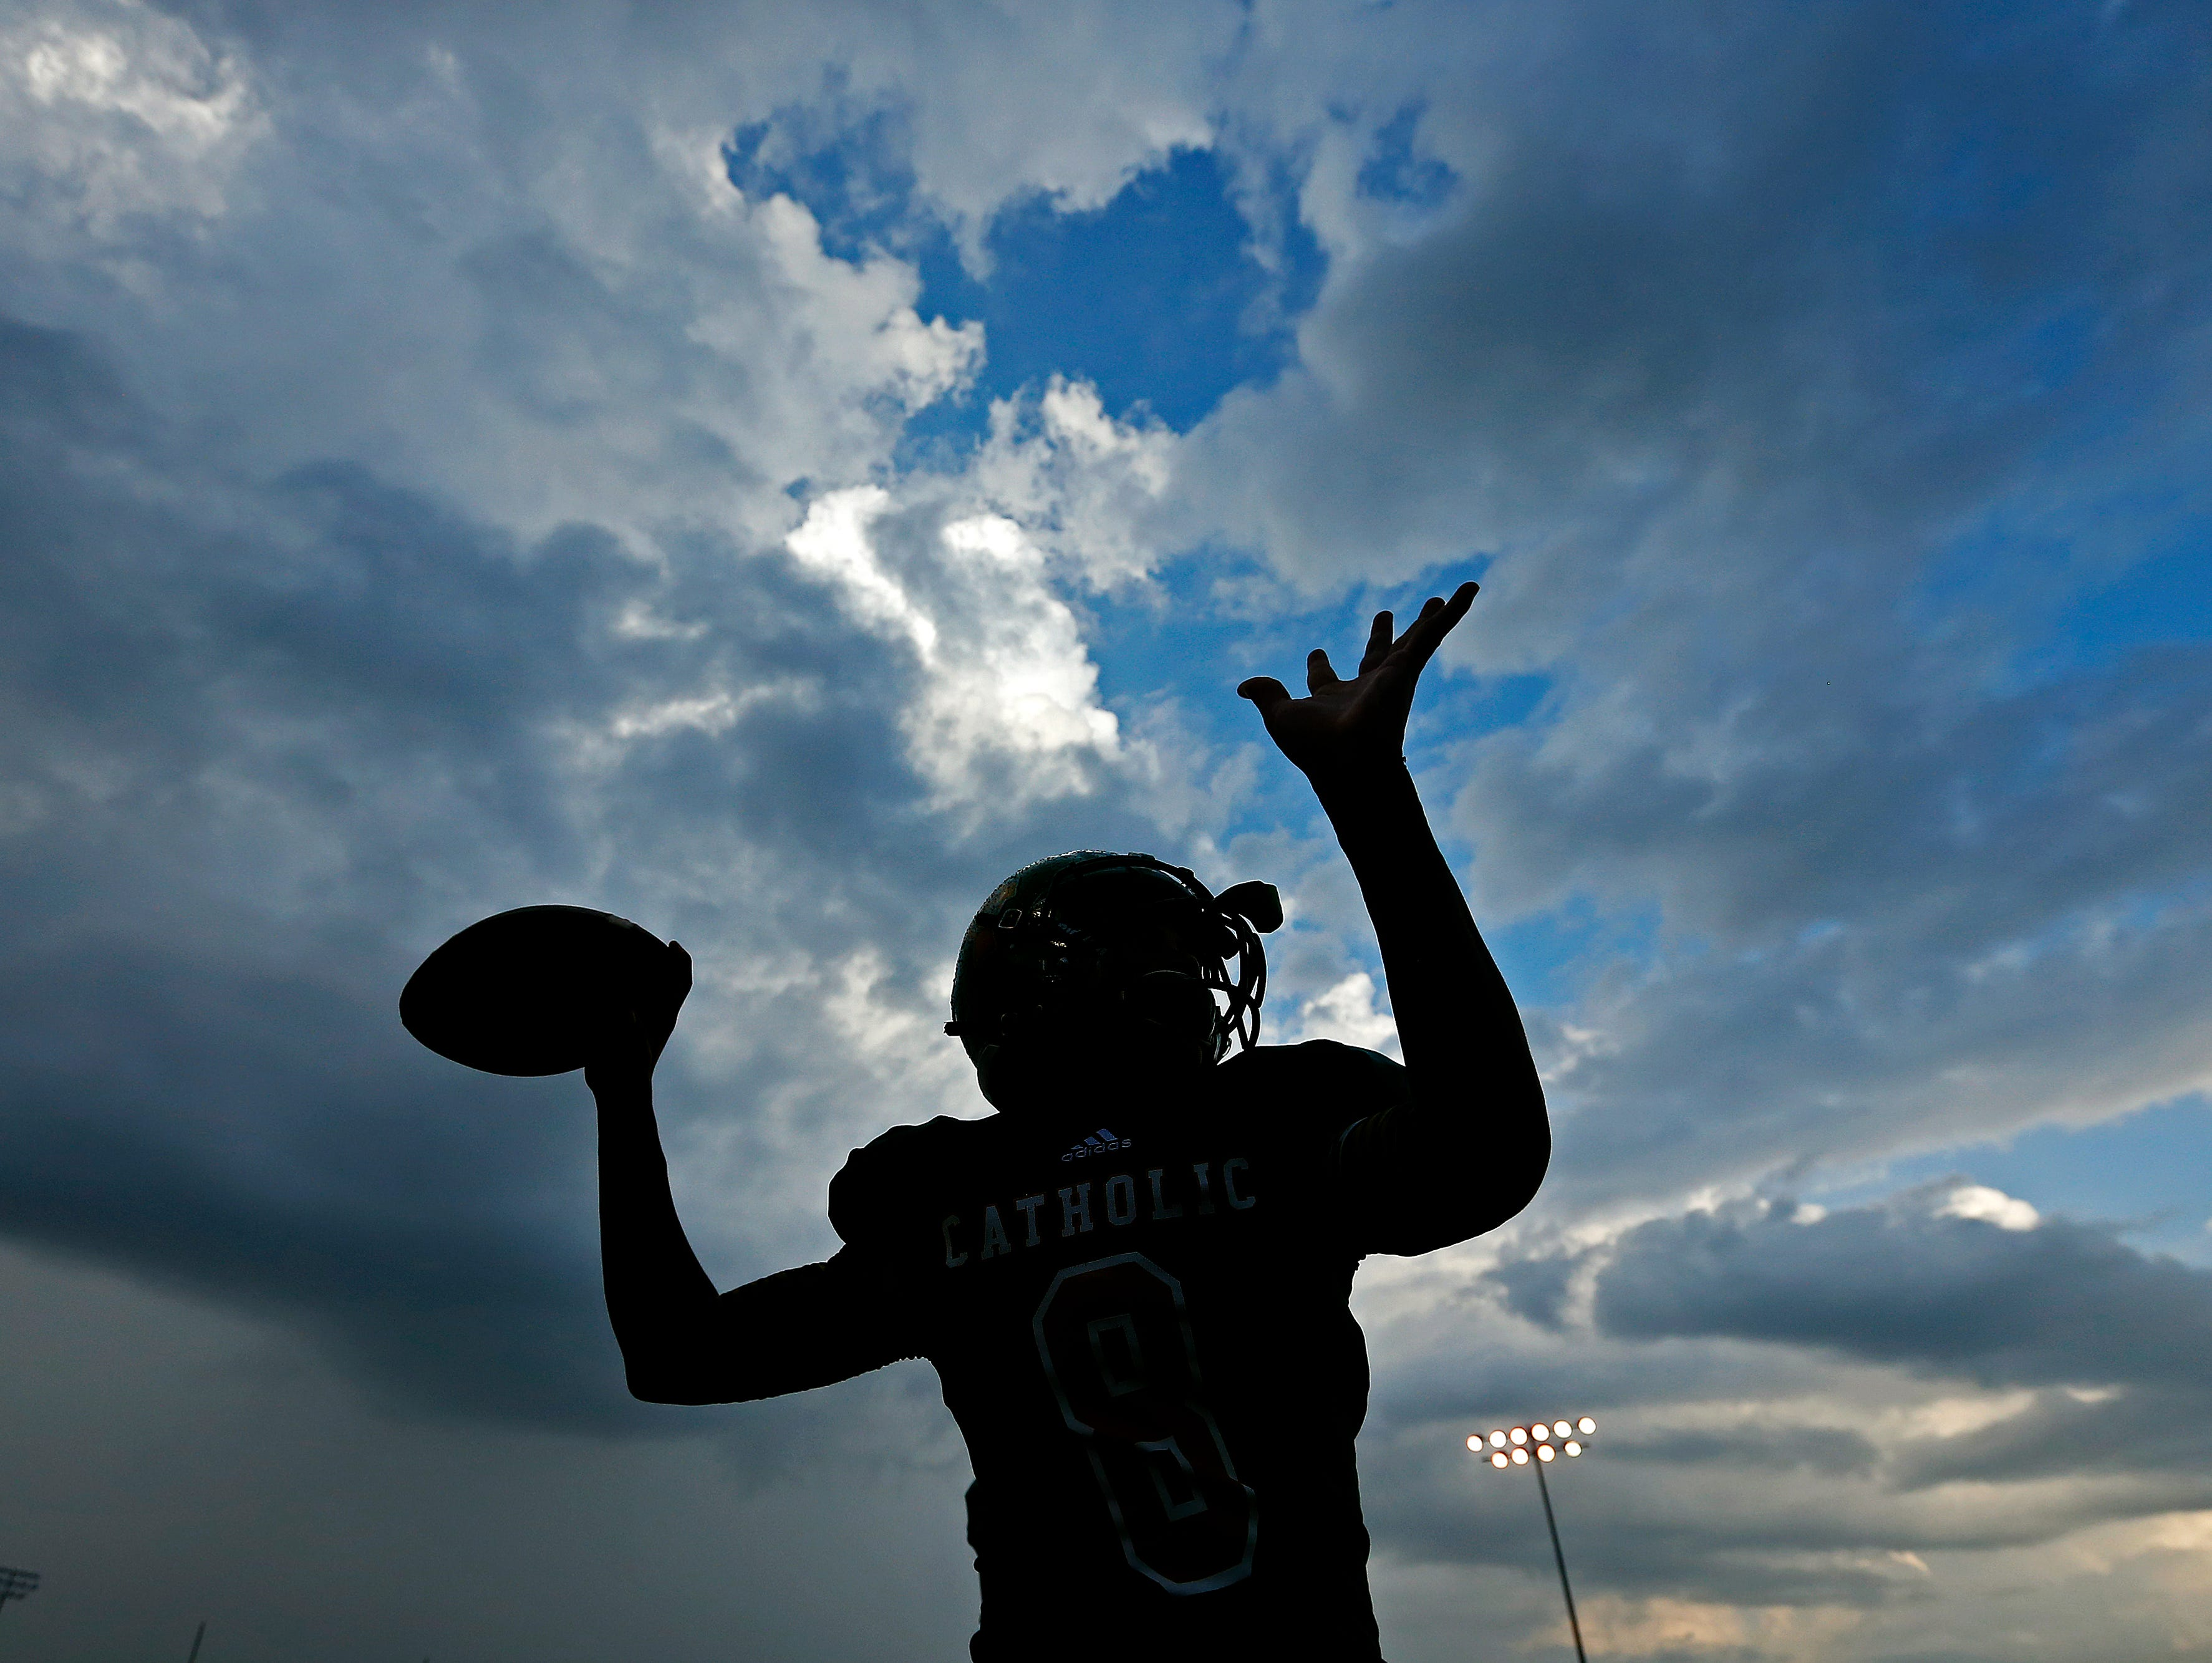 Springfield Catholic quarterback Tyson Riley (8) warms up prior to the scheduled game between Springfield Catholic High School and Fair Grove High School at Springfield Catholic High School in Springfield, Mo. on Sept. 9, 2016. The game was postponed due to severe weather in the area.